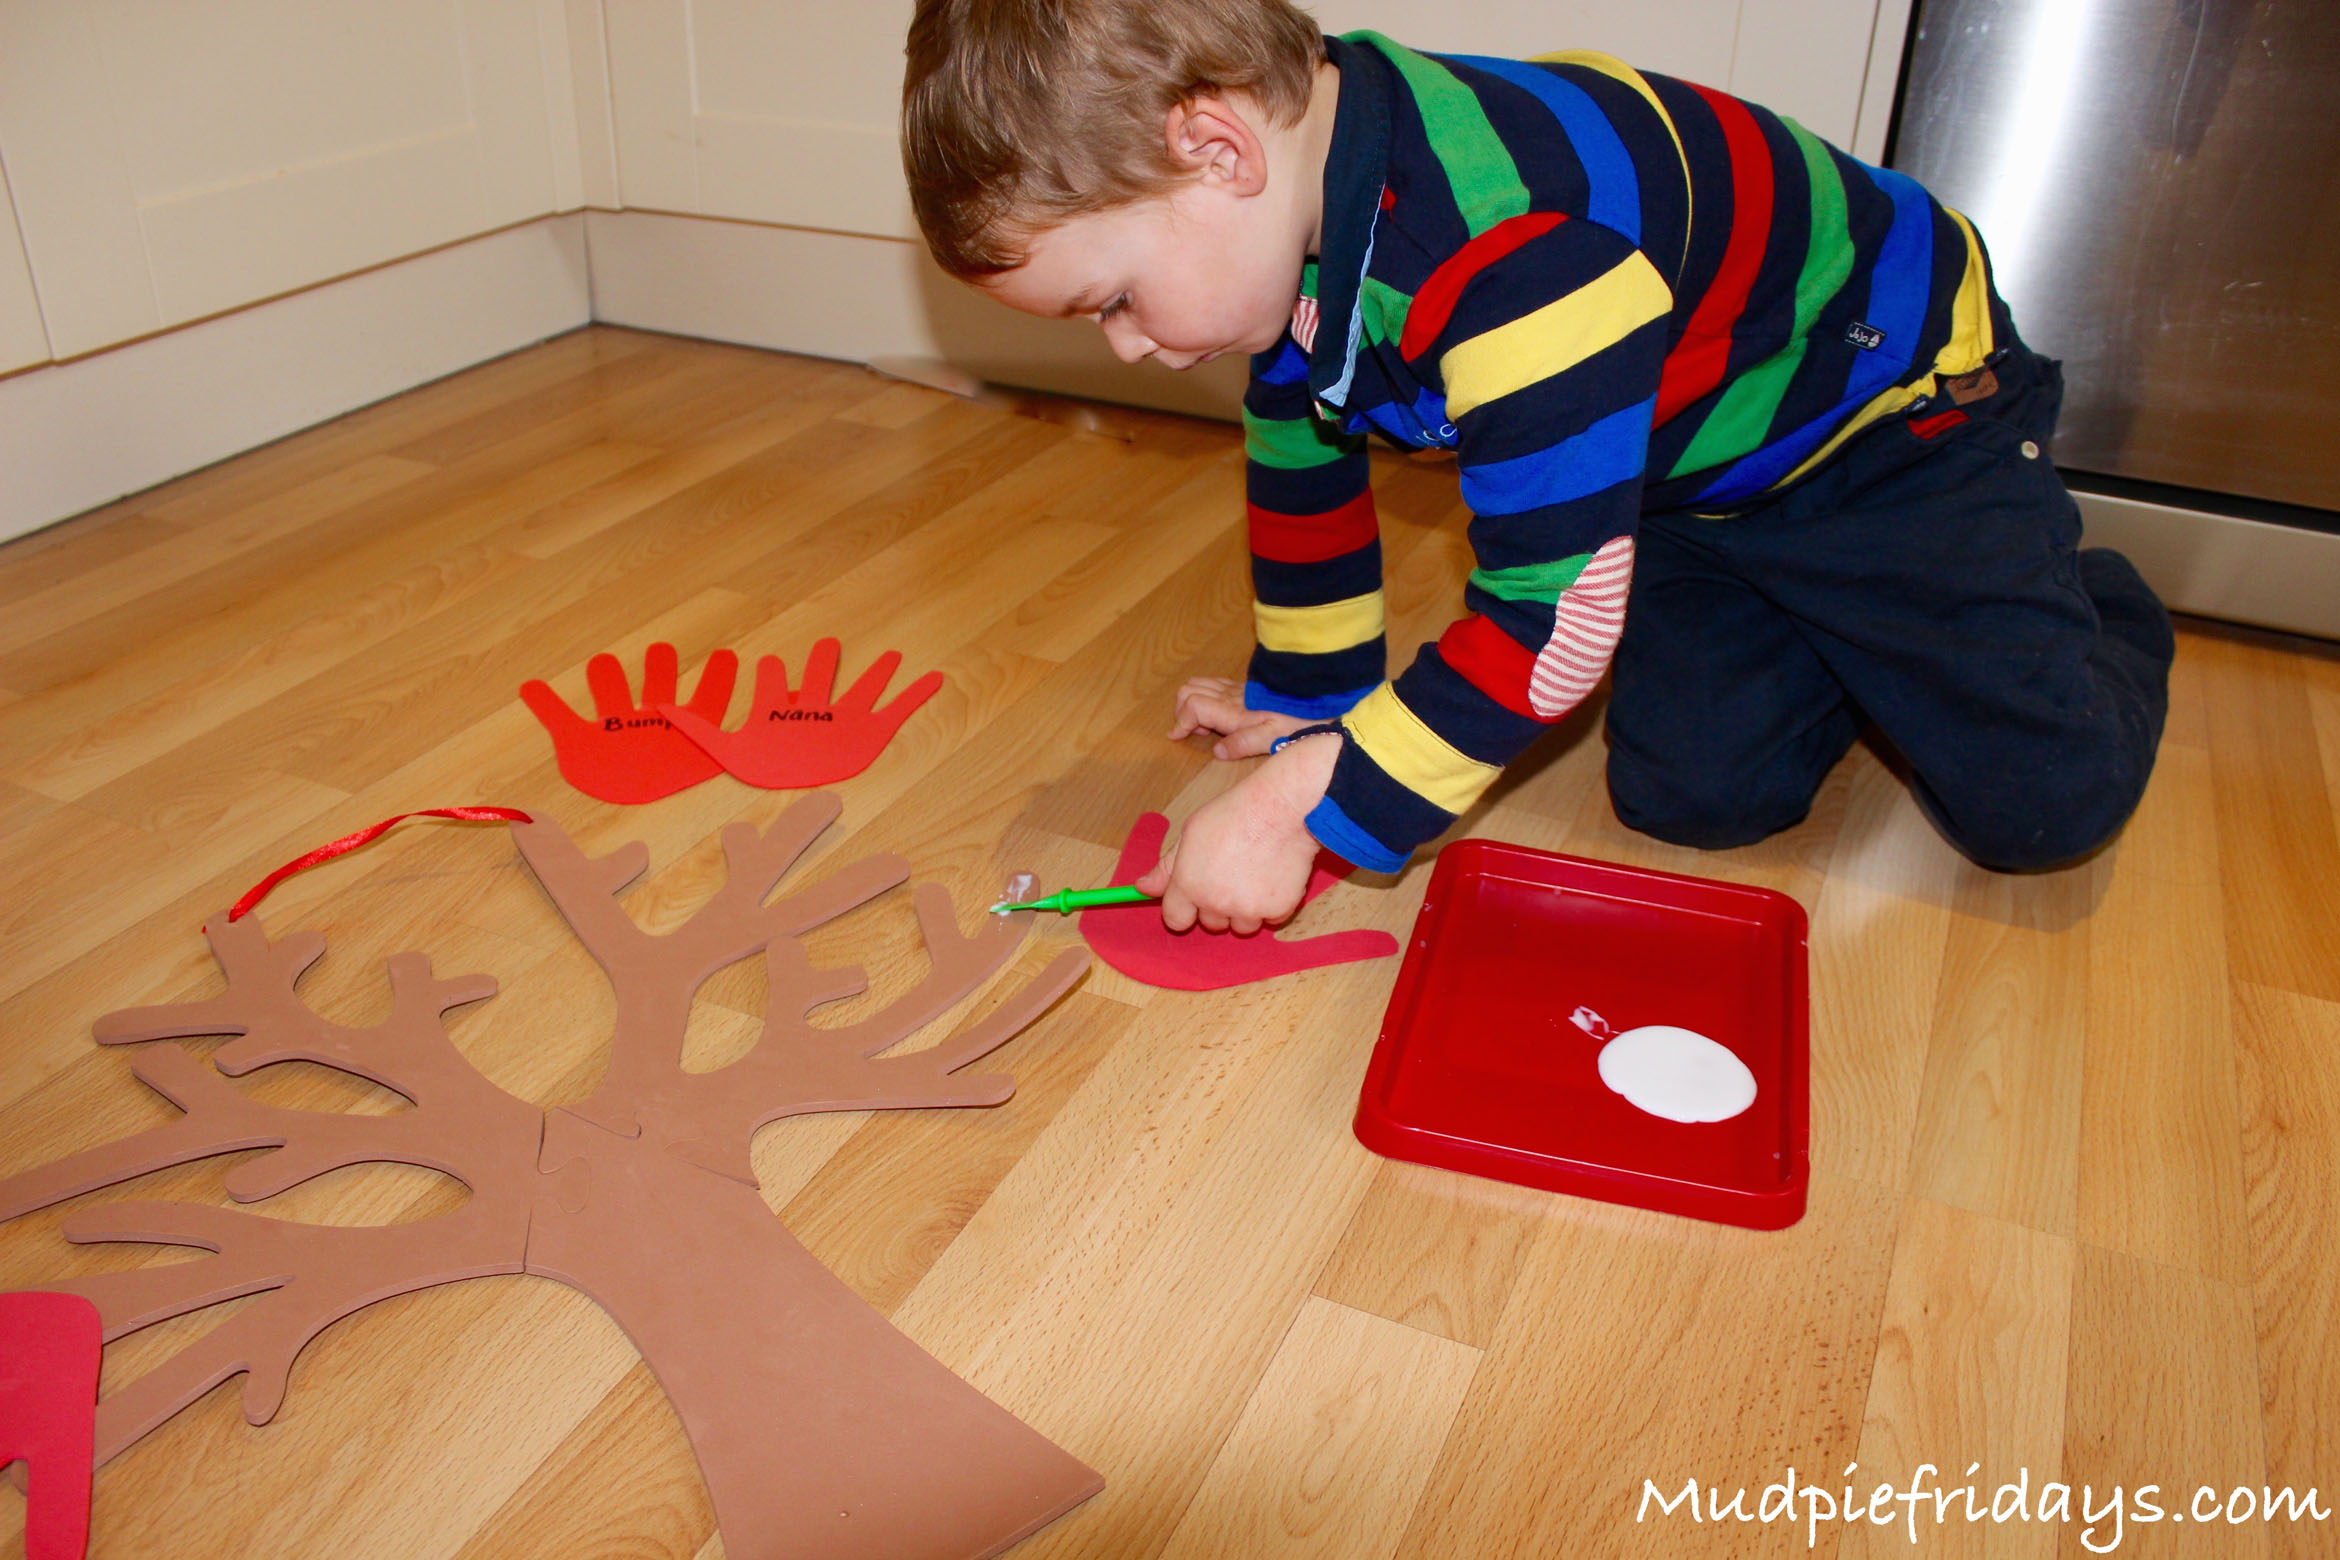 Teaching a Preschooler about Family Relationships